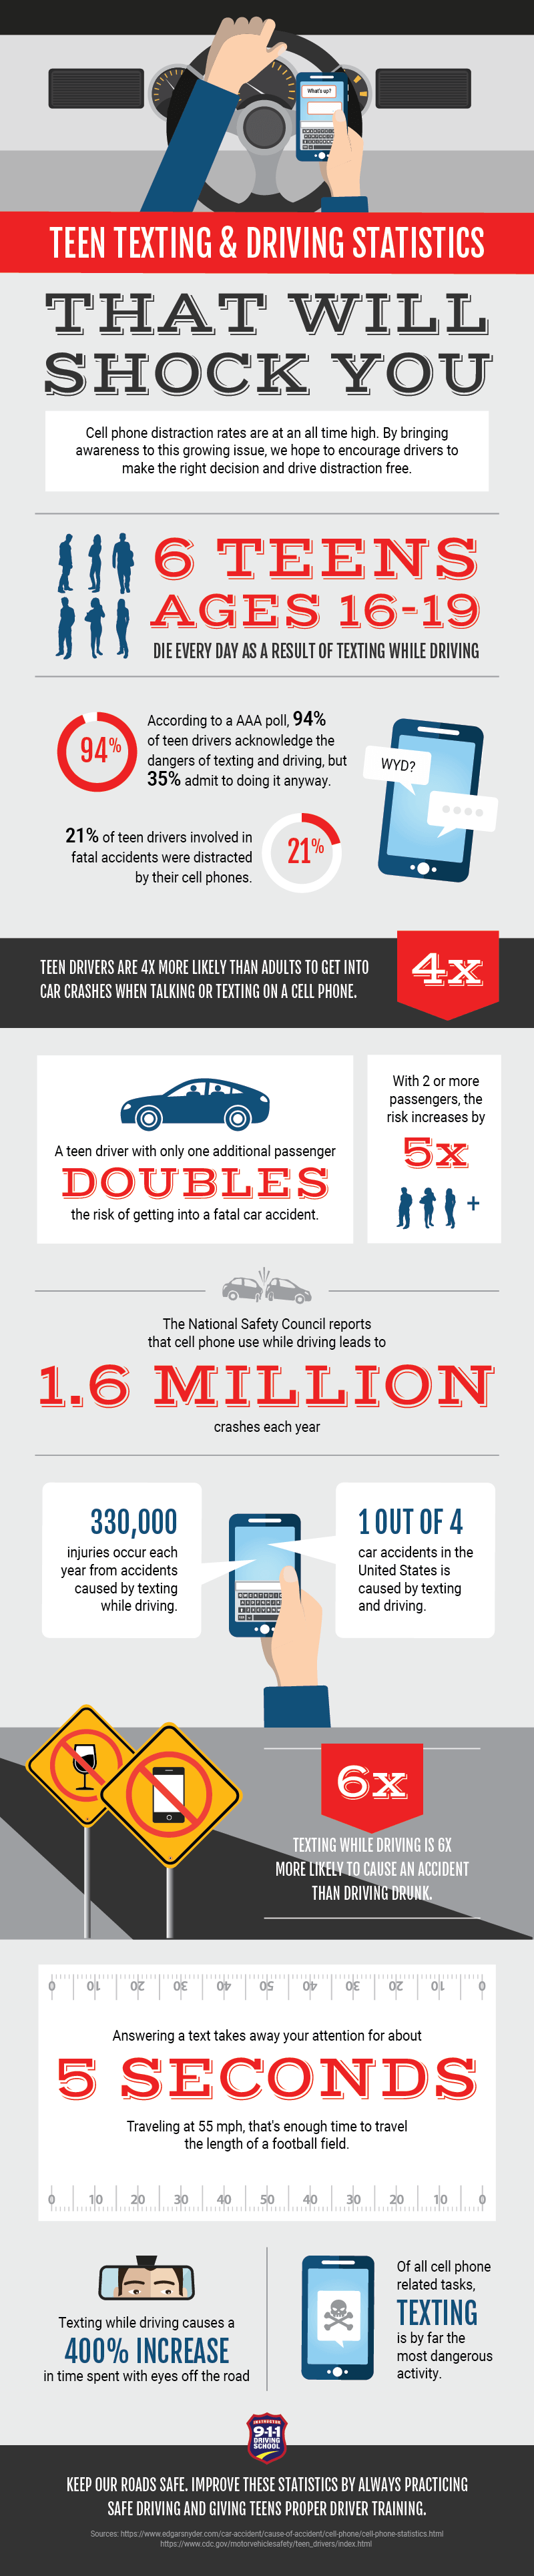 Teen Texting & Driving Statistics Infographic   911 Driving School